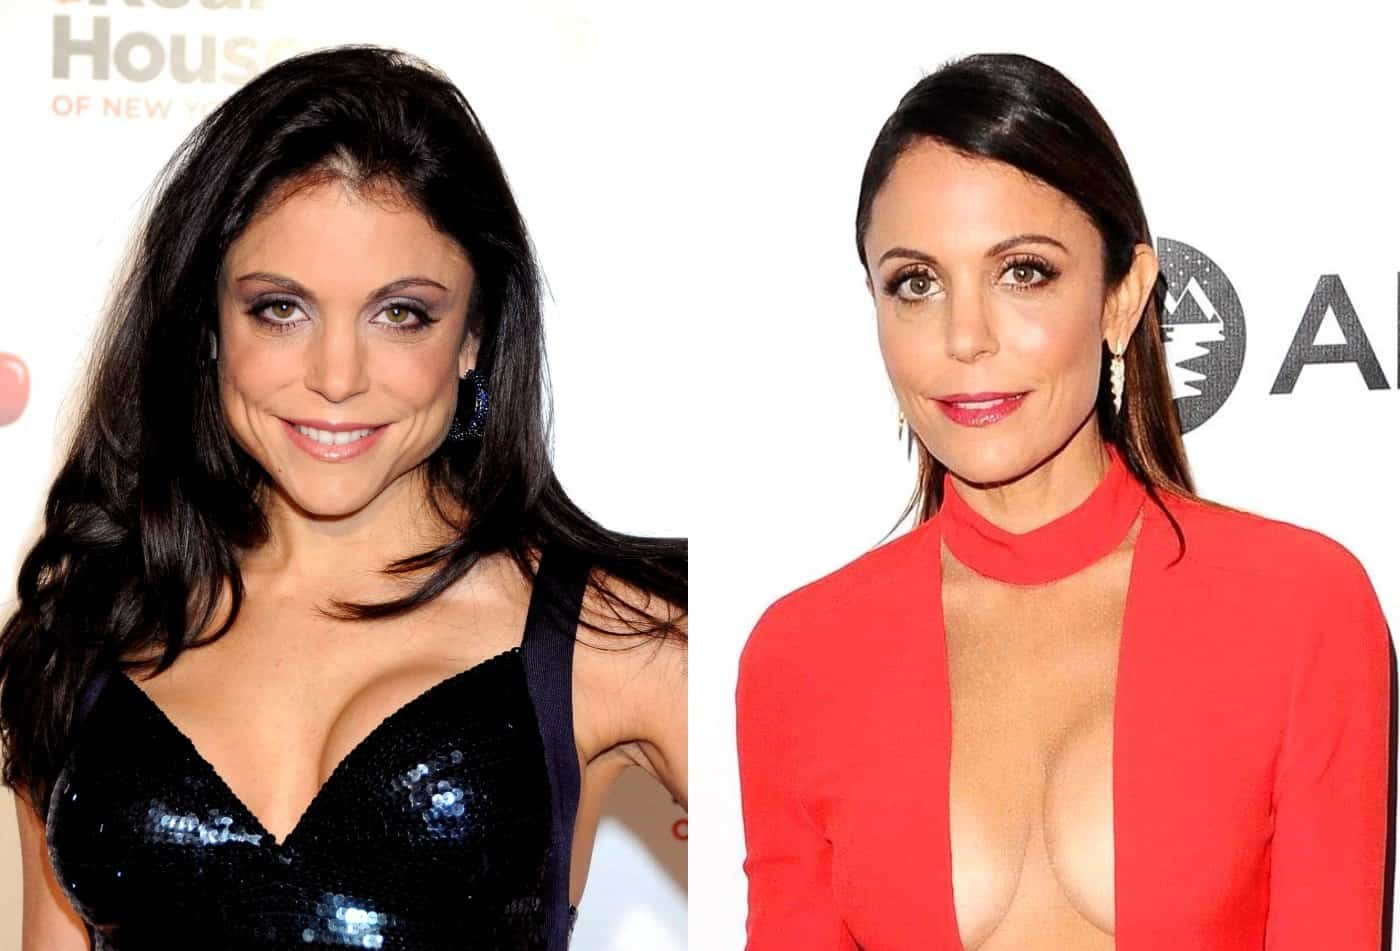 RHONY Bethenny Frankel Admits Plastic Surgery, See Before